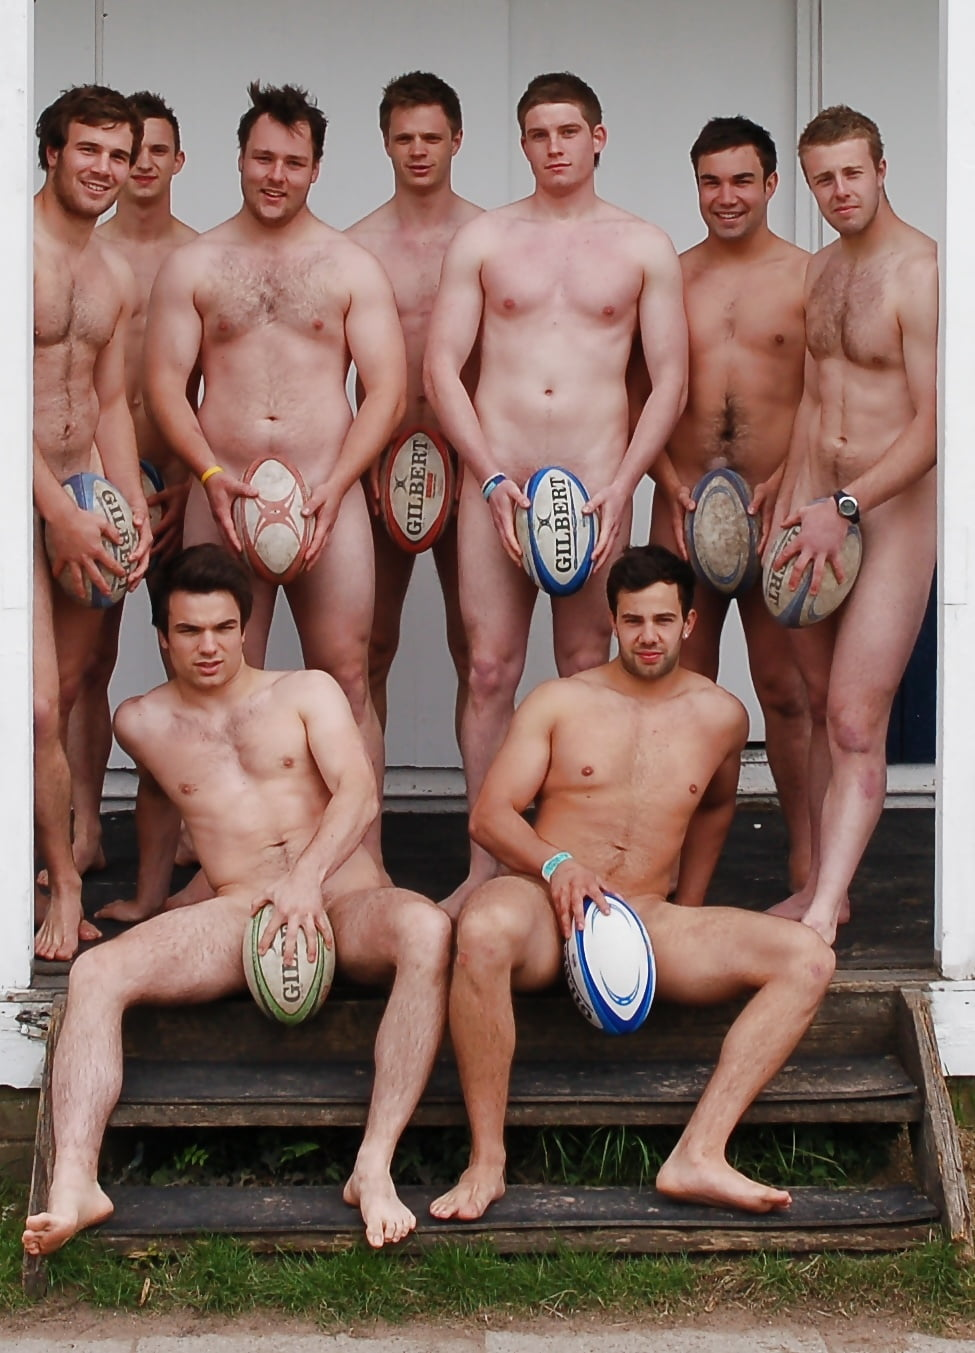 Sex Nude Male Rugby Players Calender Jpg